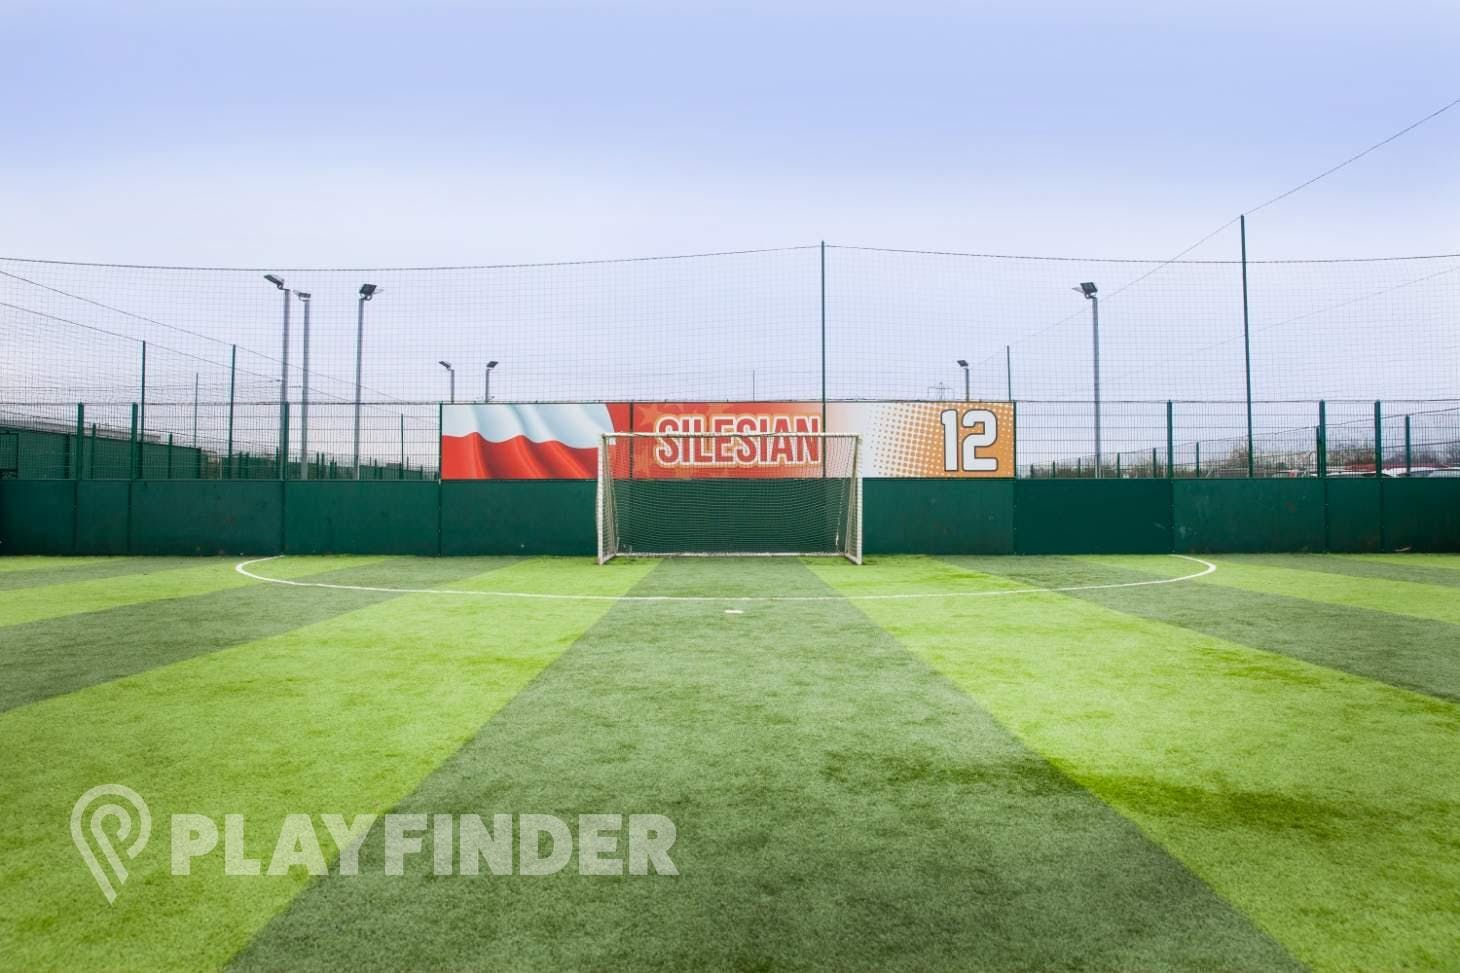 Goals Plymouth 7 a side | 3G Astroturf football pitch